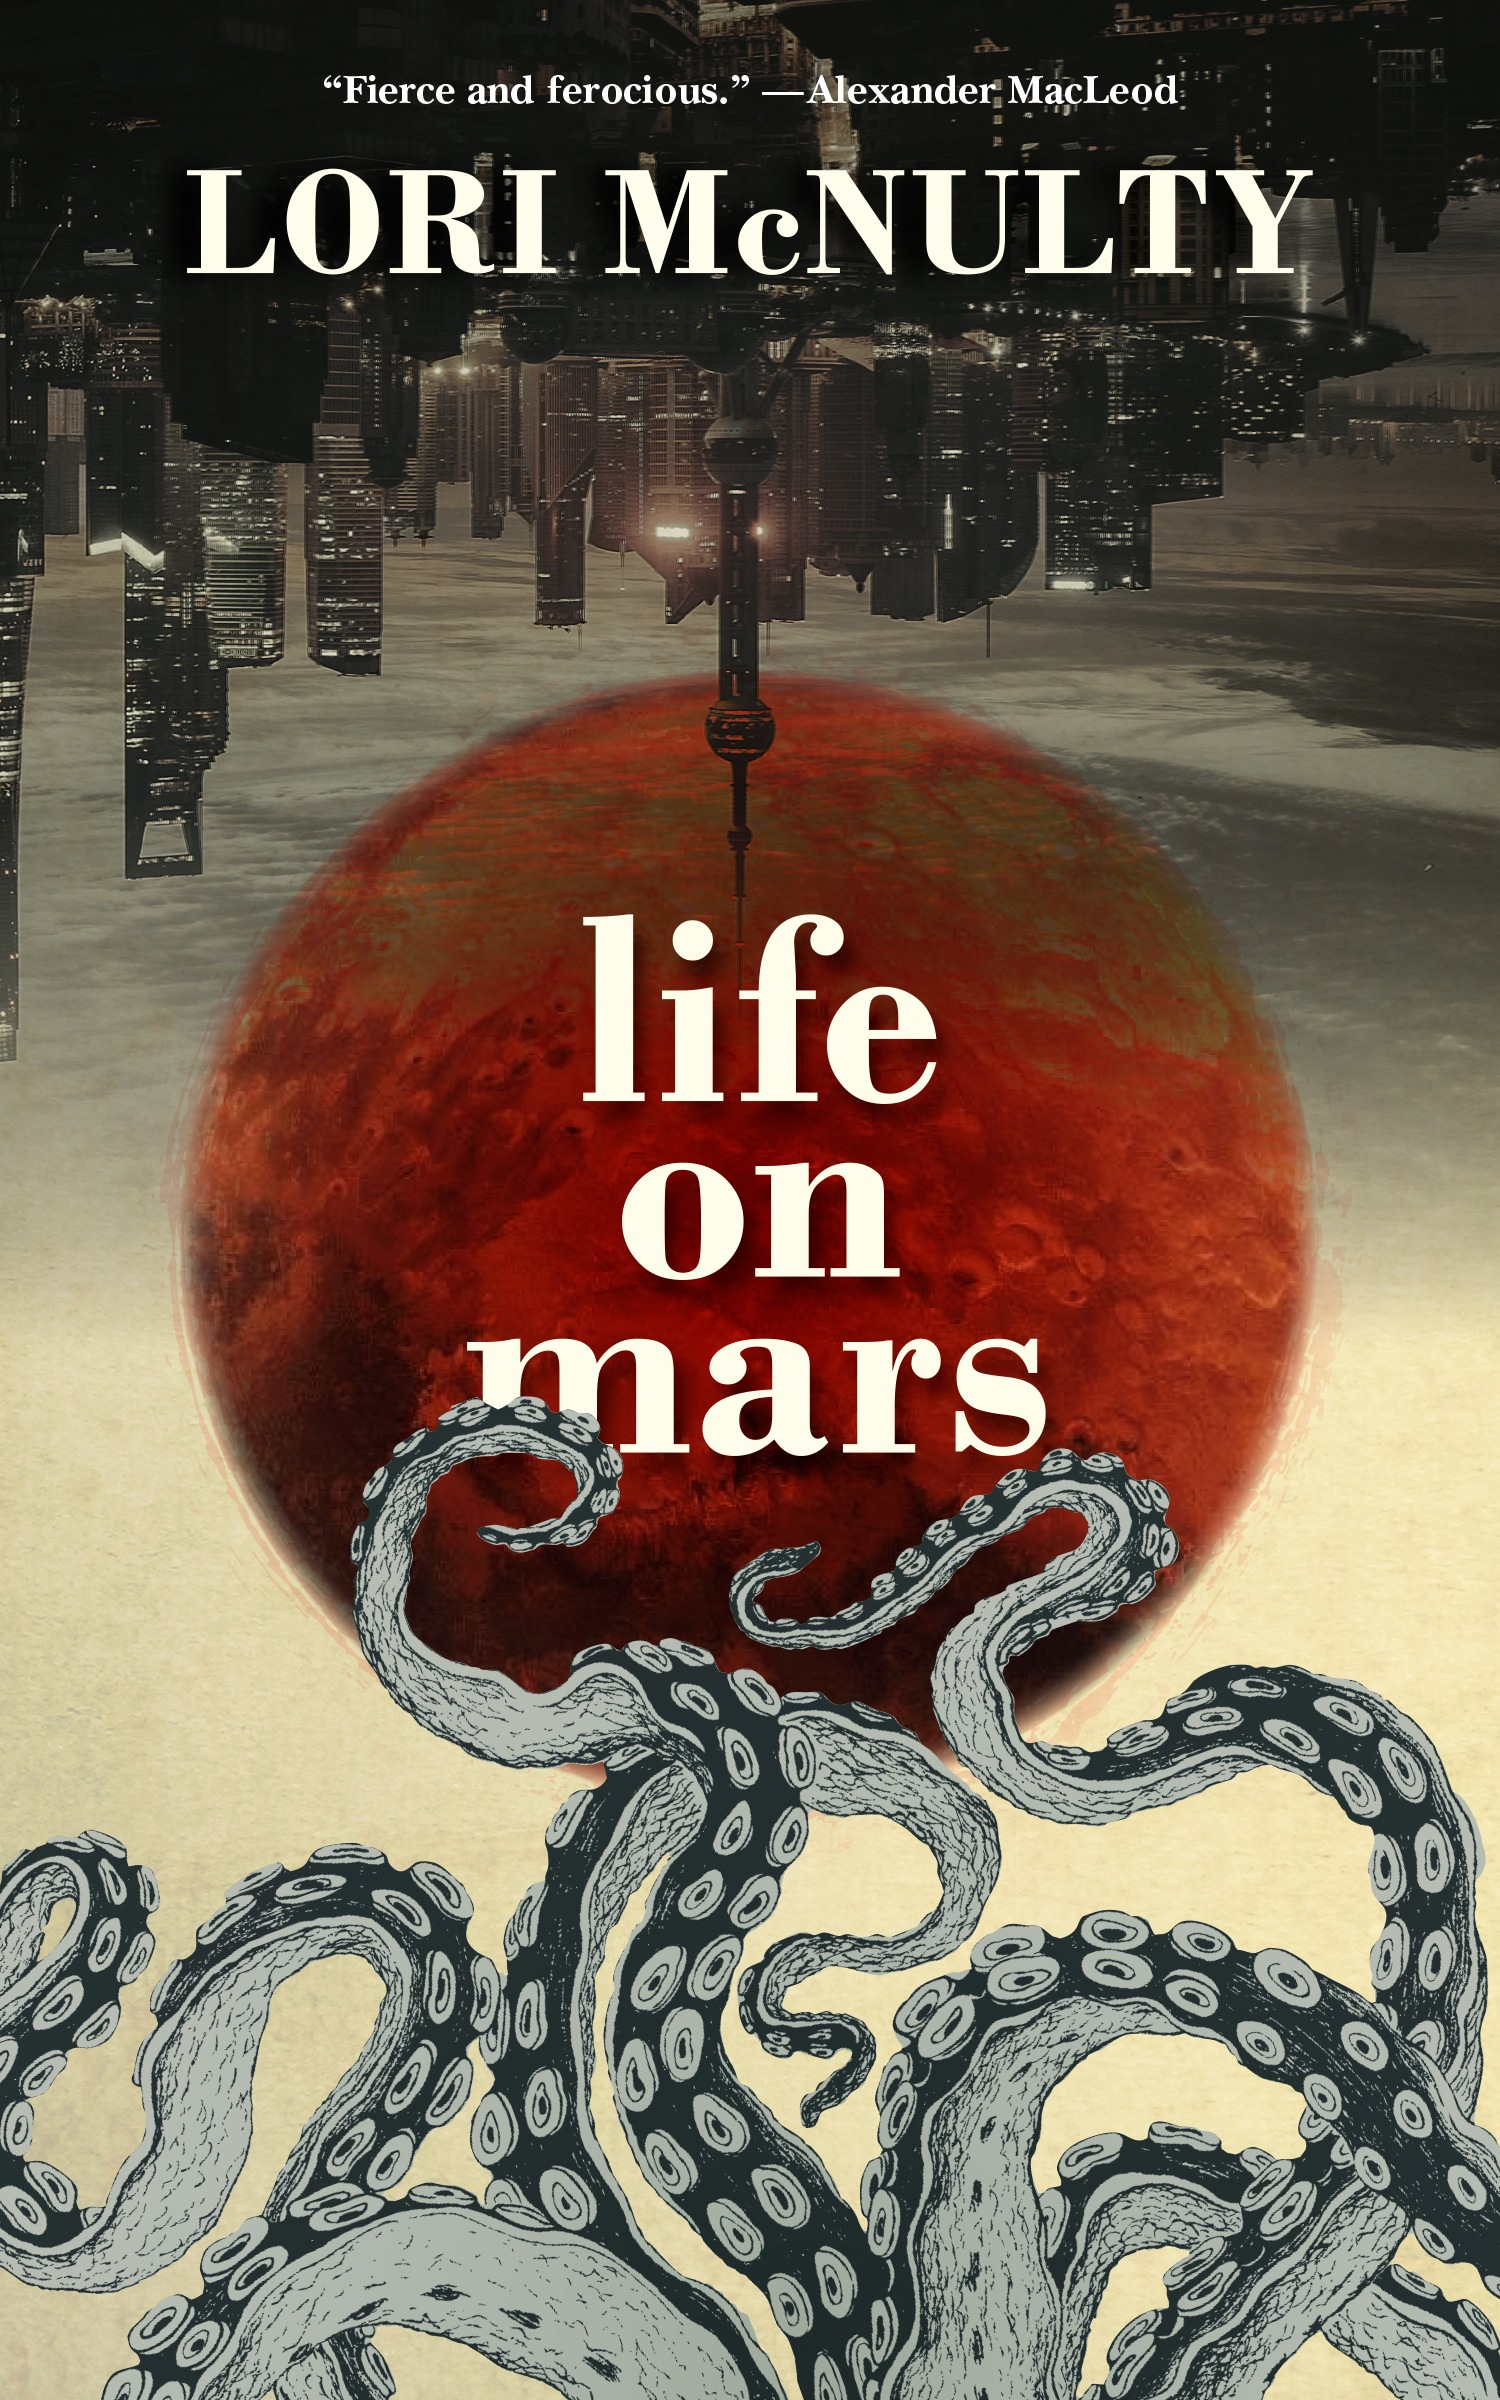 Life on Mars short fiction collection by Lori McNulty